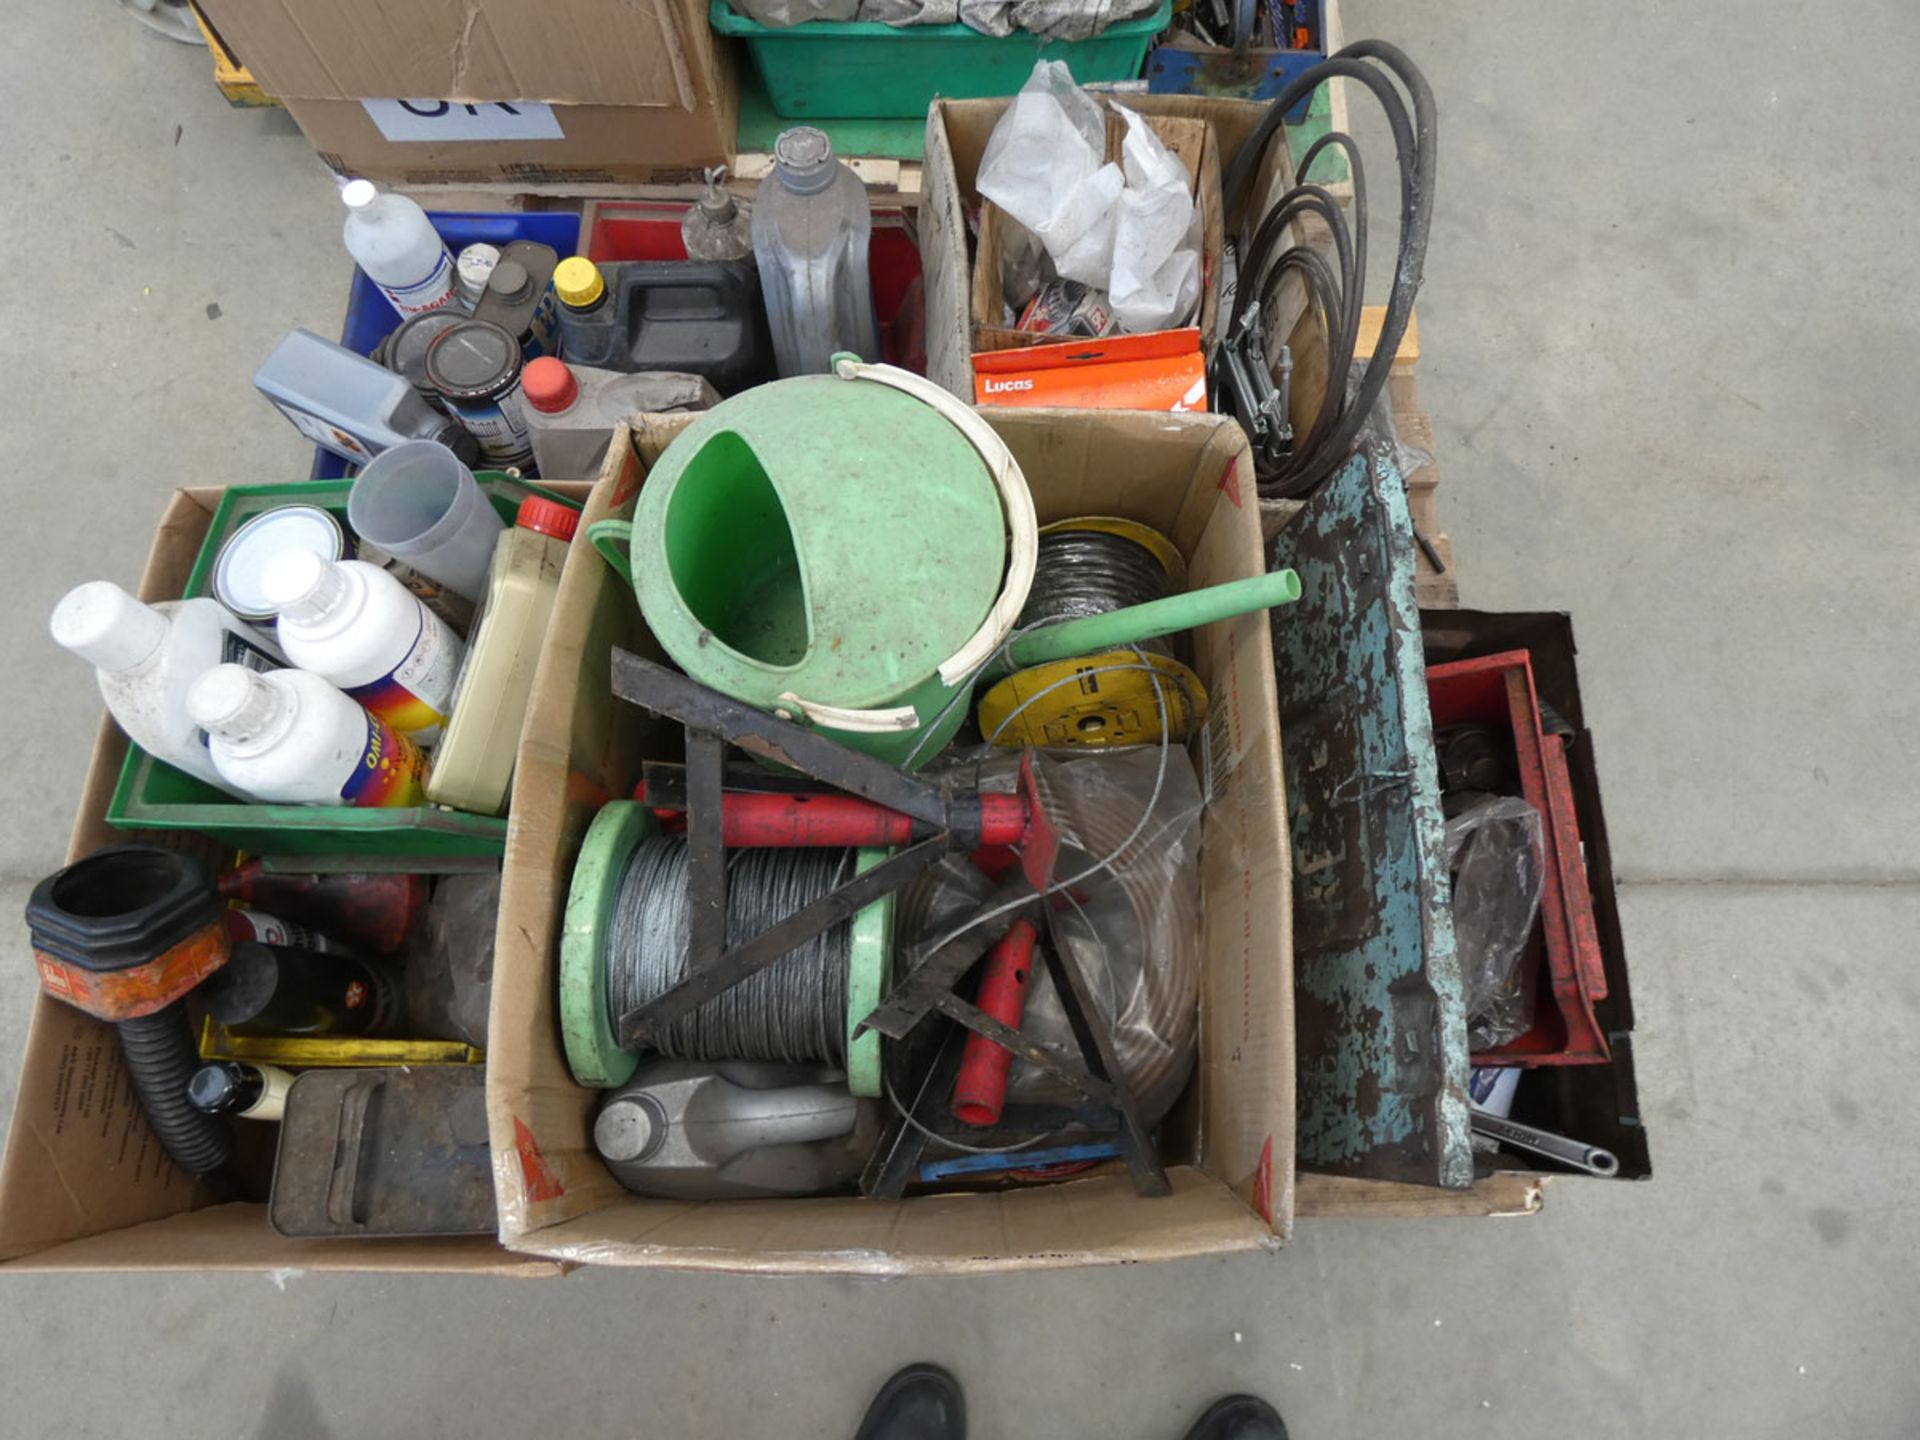 Pallet containing wire cable, axle stands, watering can, chemicals, funnels, spanners, oil, clamps